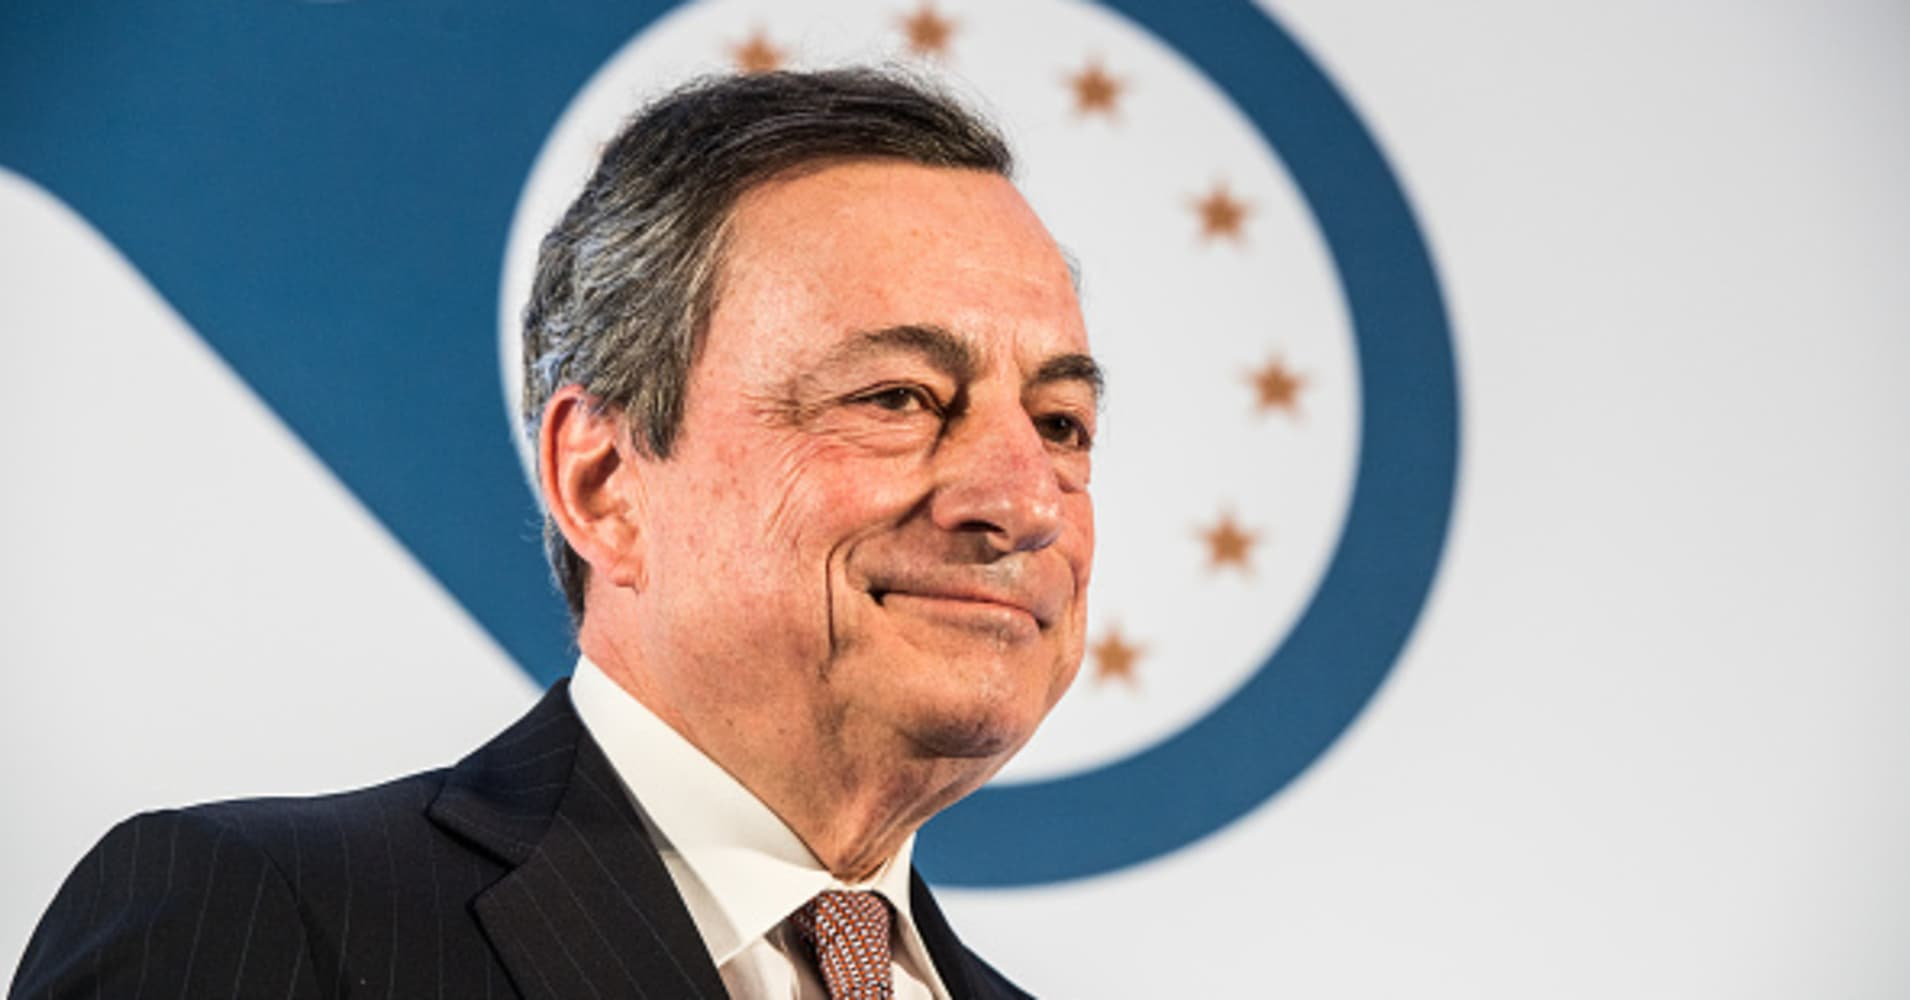 Banks in Europe are unexpectedly rallying after Draghi's comments. Here's why